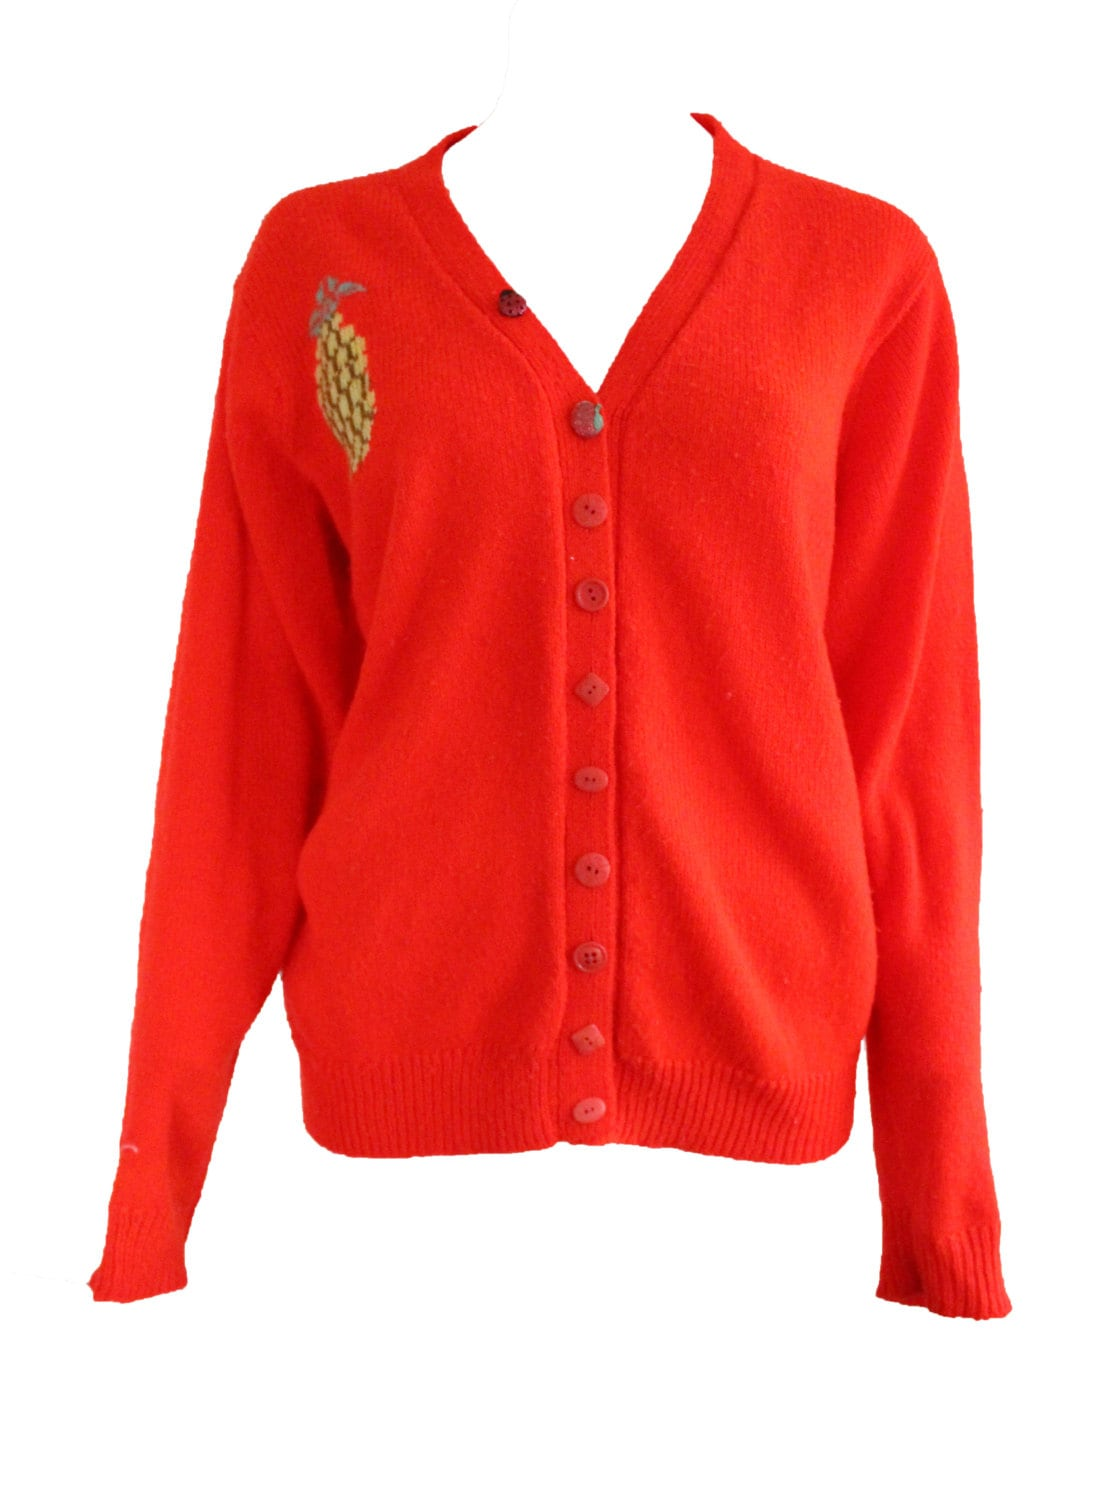 Vintage Knitted Pineapple Cardigan Red Wool Sweater